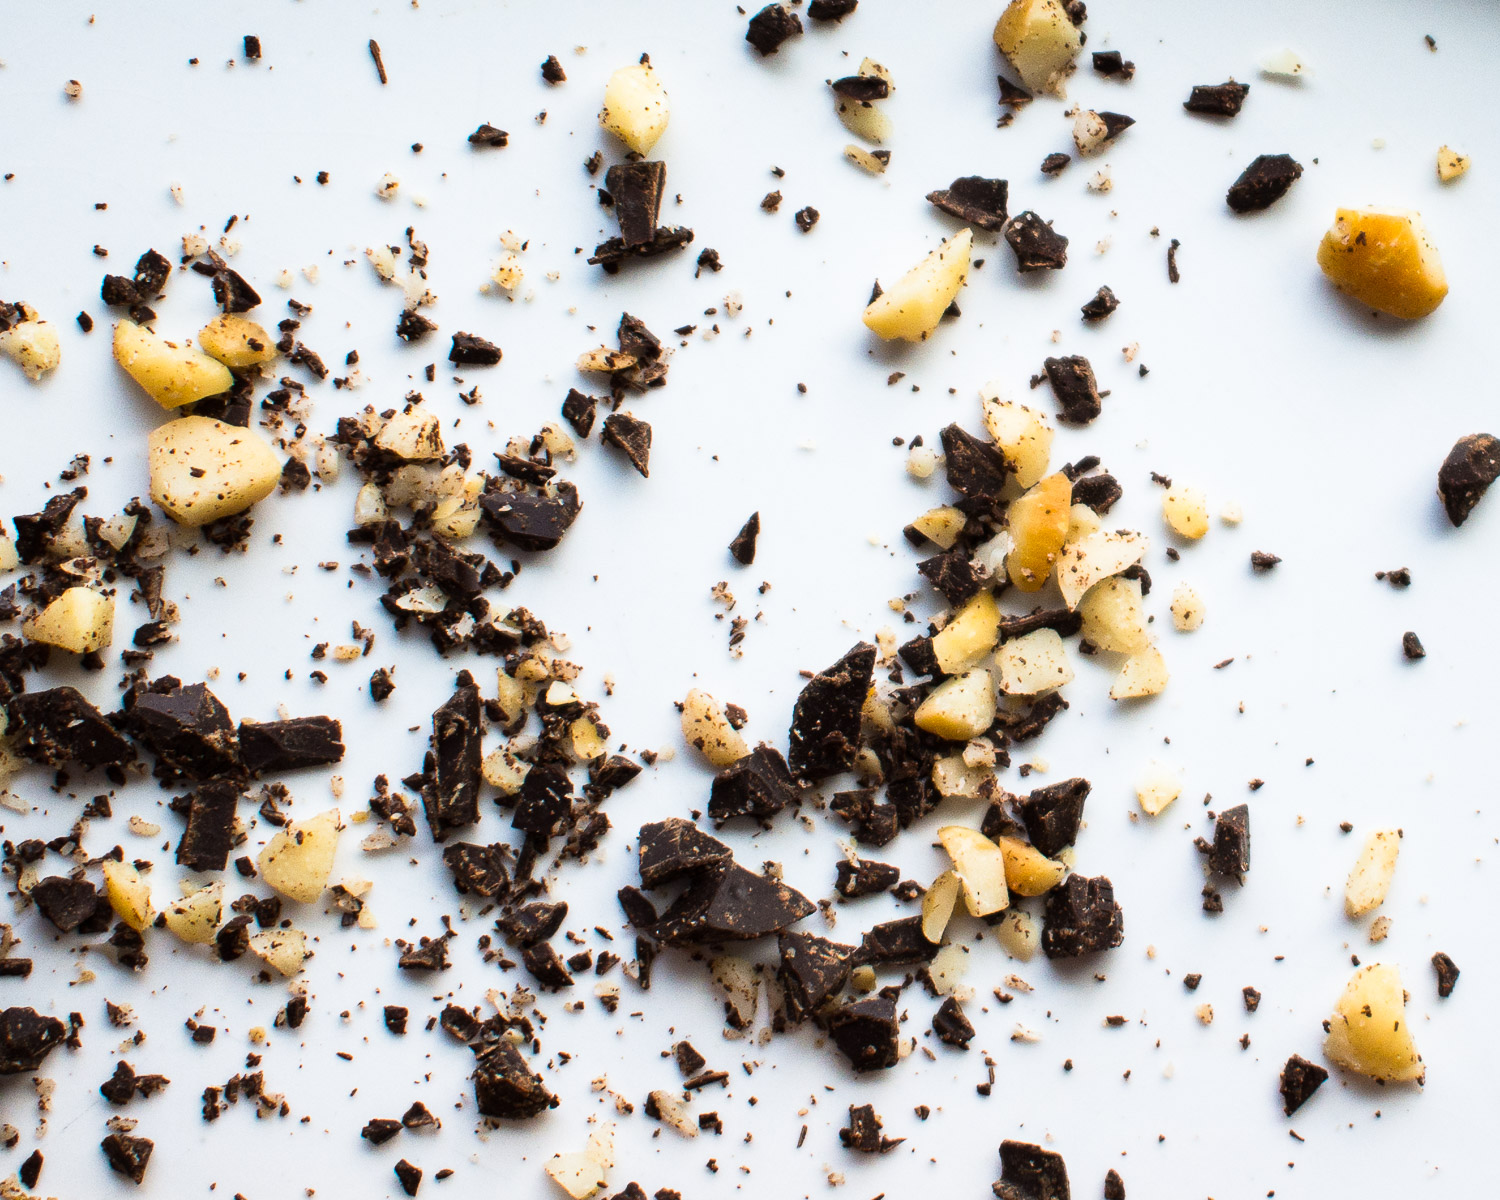 Coarsely chopped dark chocolate and macadamia nuts.